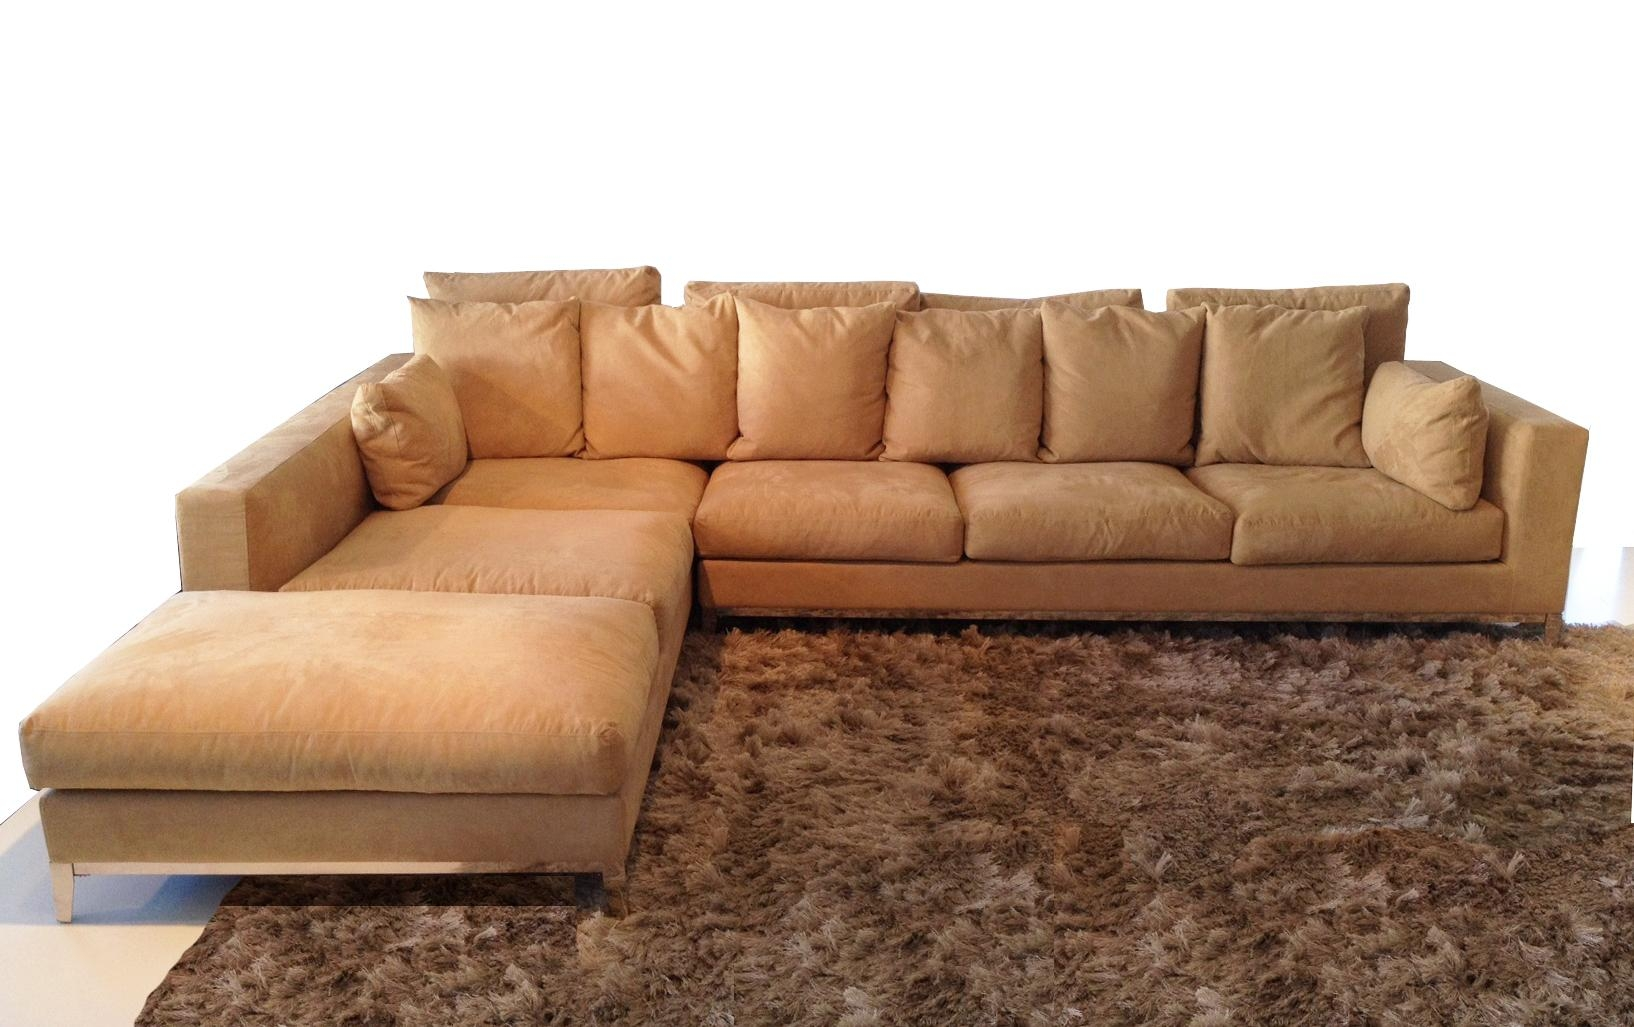 Furniture: Nice Extra Large Sectional Sofa For Large Living Room Throughout Long Chaise Sofa (Image 6 of 20)